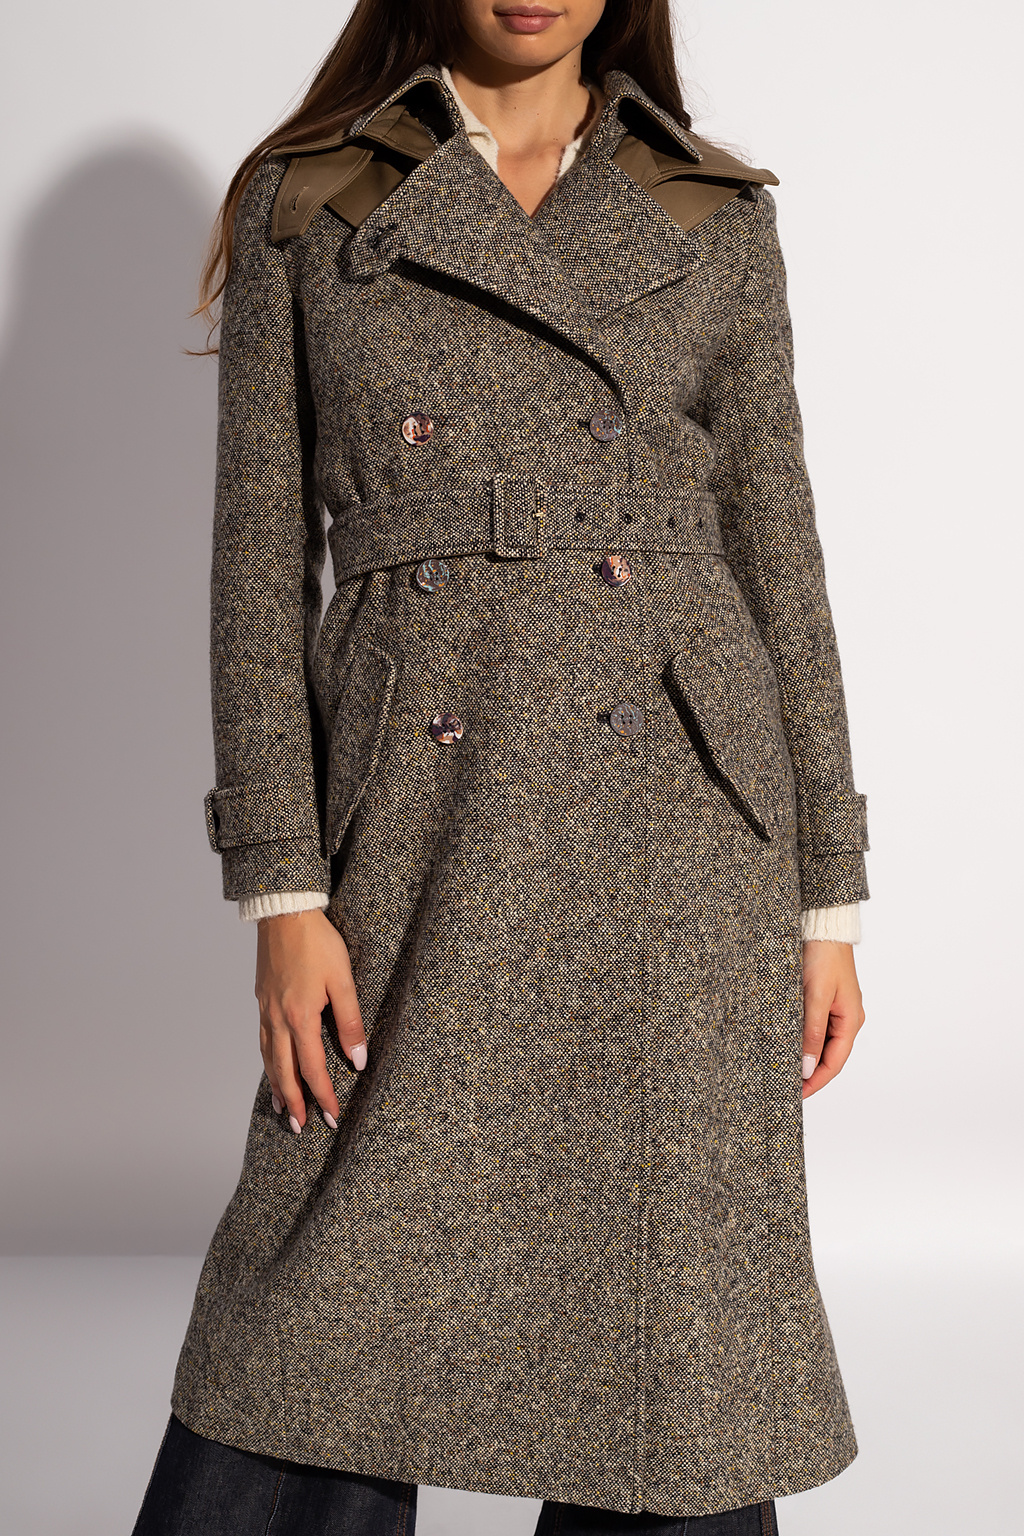 Chloé Double-breasted coat